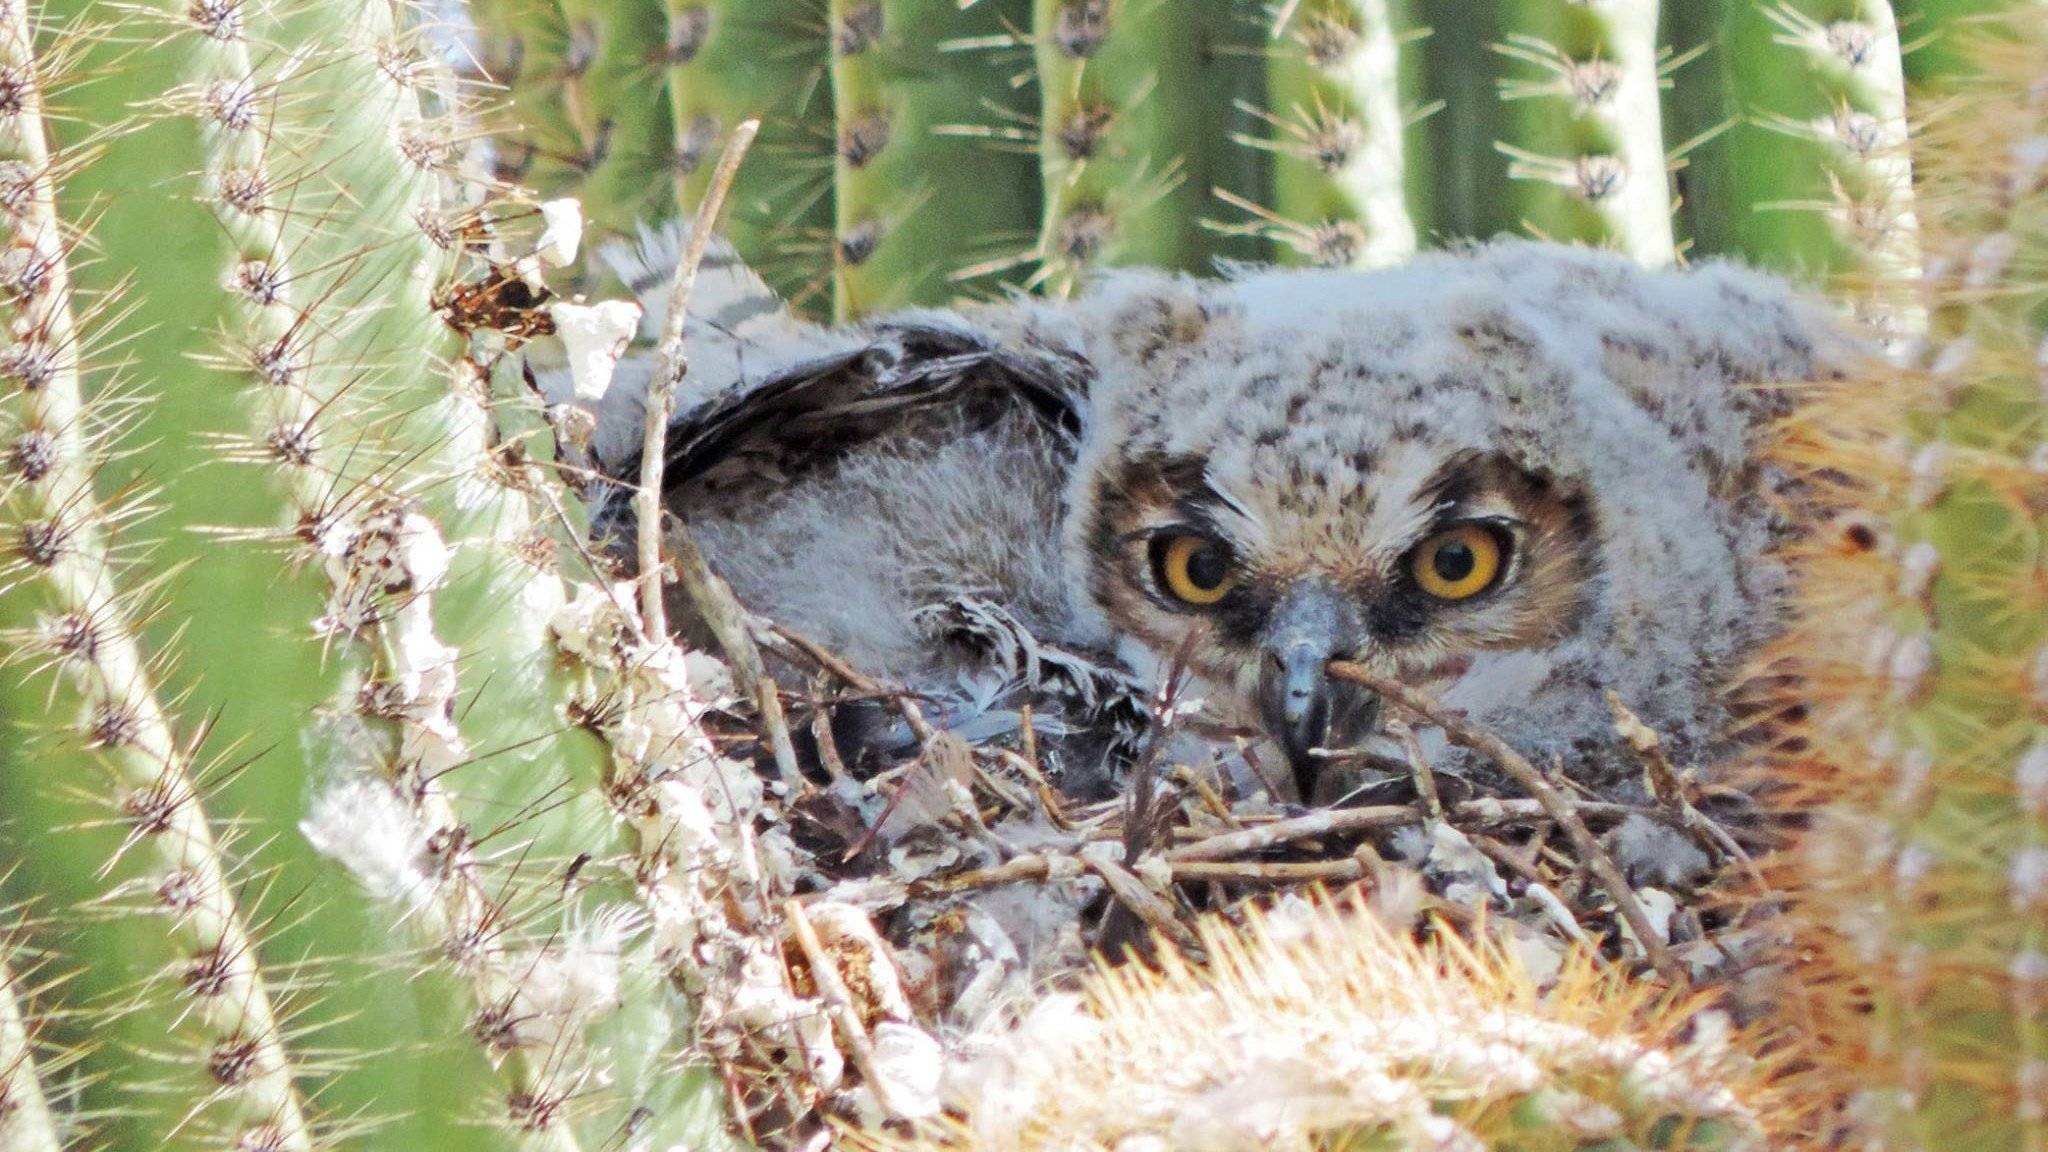 (Source: Facebook/ Saguaro National Park)